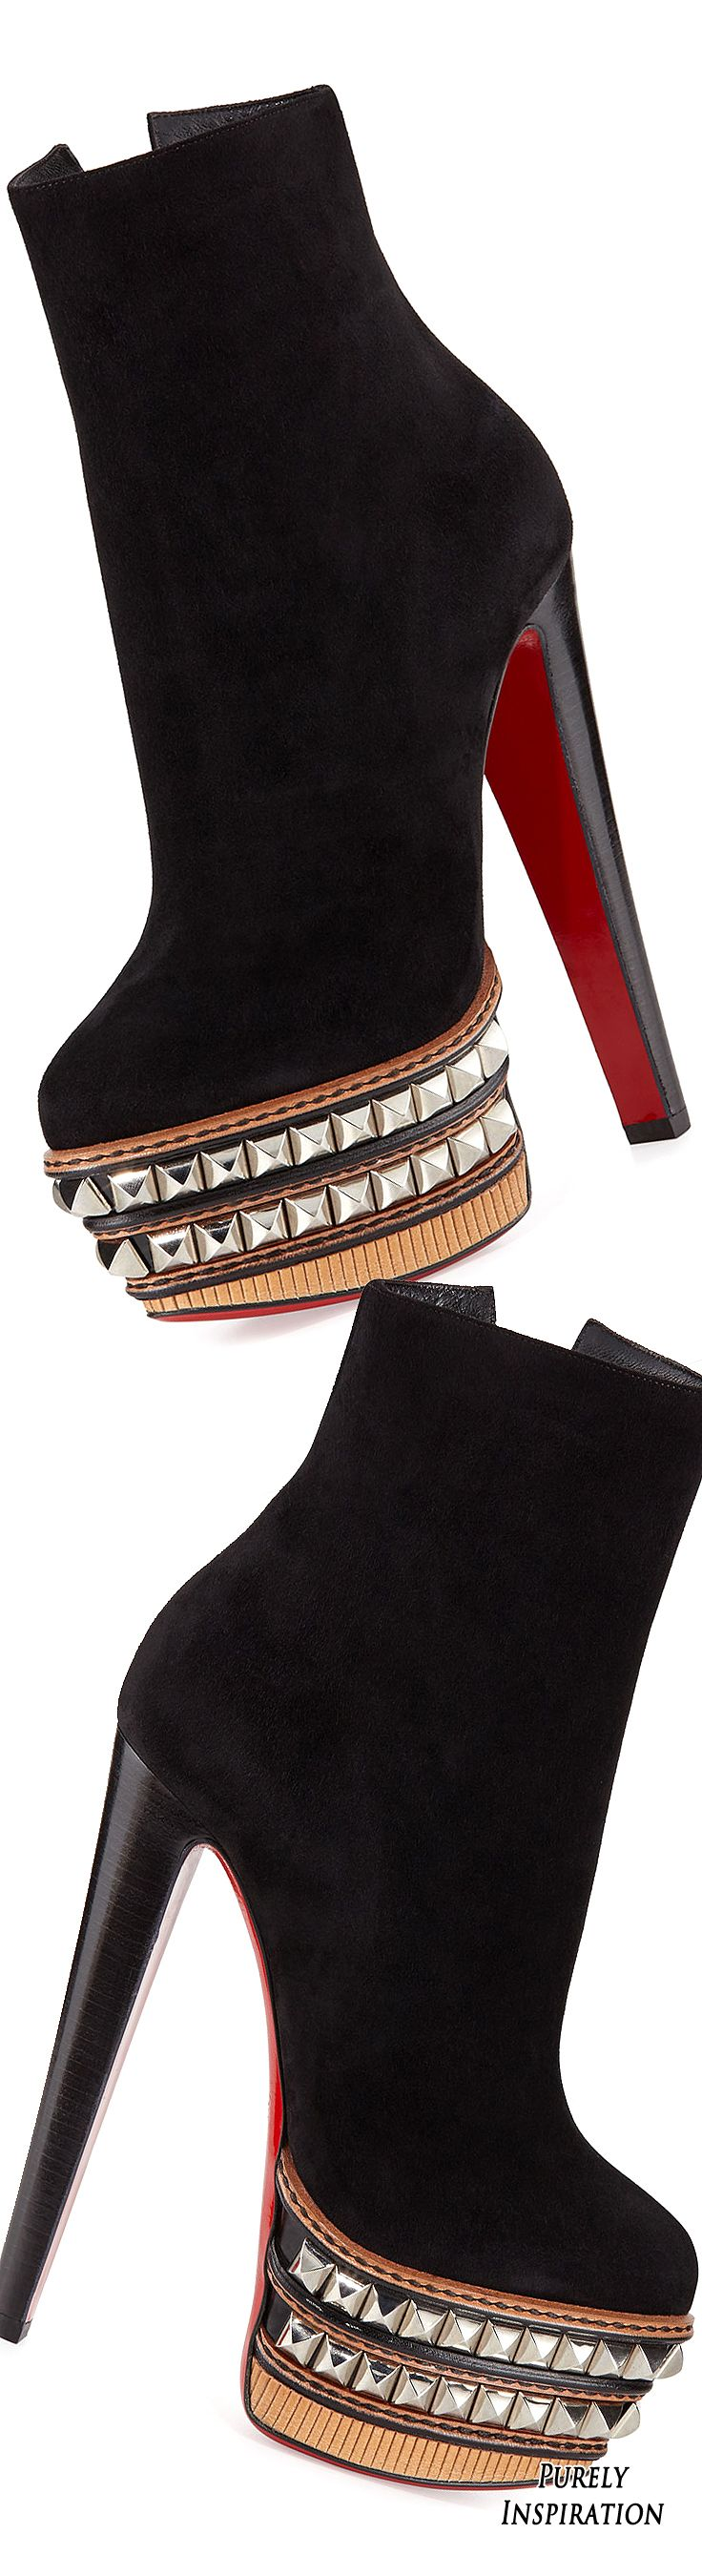 Christian Louboutin Faolo Bootie   Purely Inspiration